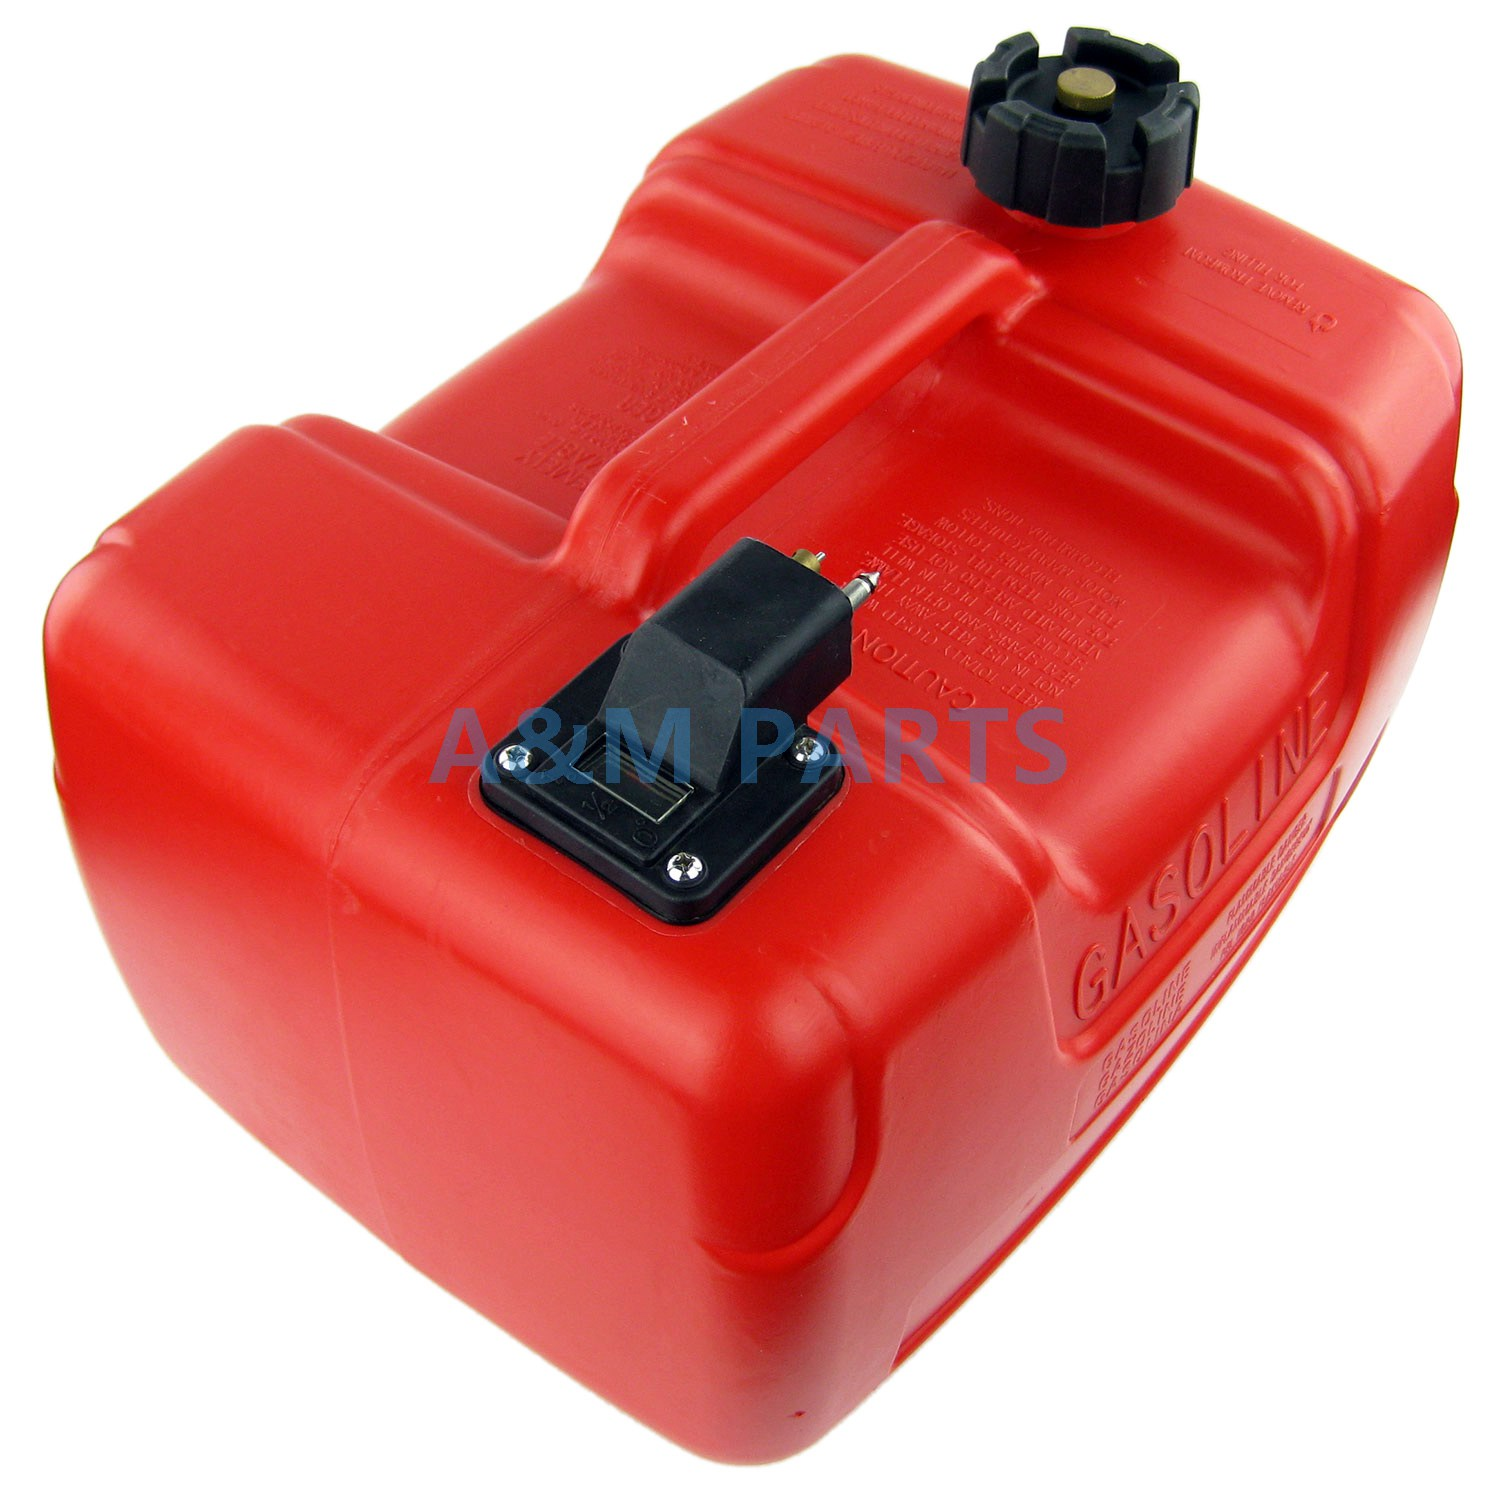 Portable Boat Fuel Tank 3.2 Gallon 12L Marine Outboard Fuel Tank With Fuel Hose Connector Fuel Gauge boat motor 24l fuel tank assembly for yamaha outboard engine with fuel cap and fuel gauge